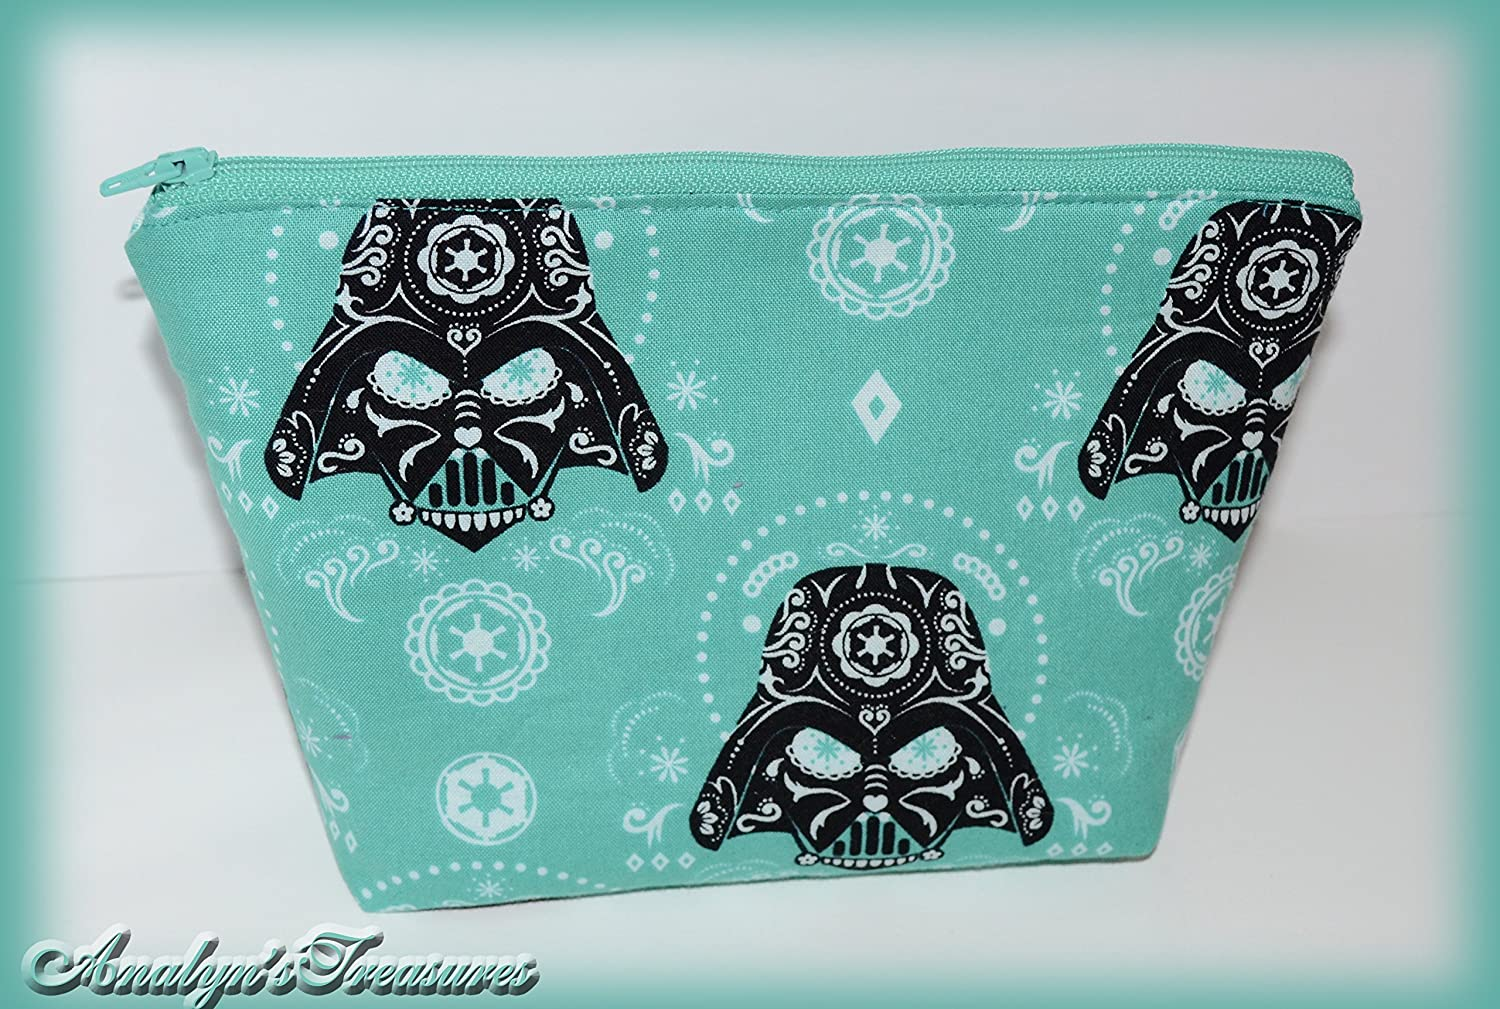 Quilted Cosmetic Bag, Make Up Bag, Star Wars Sugar Skull Darth Vader Cosmetic Bag, On The Go Bag, Cosmetic Pouch, Clutch Bag, Star Wars, Or Choose Other Design